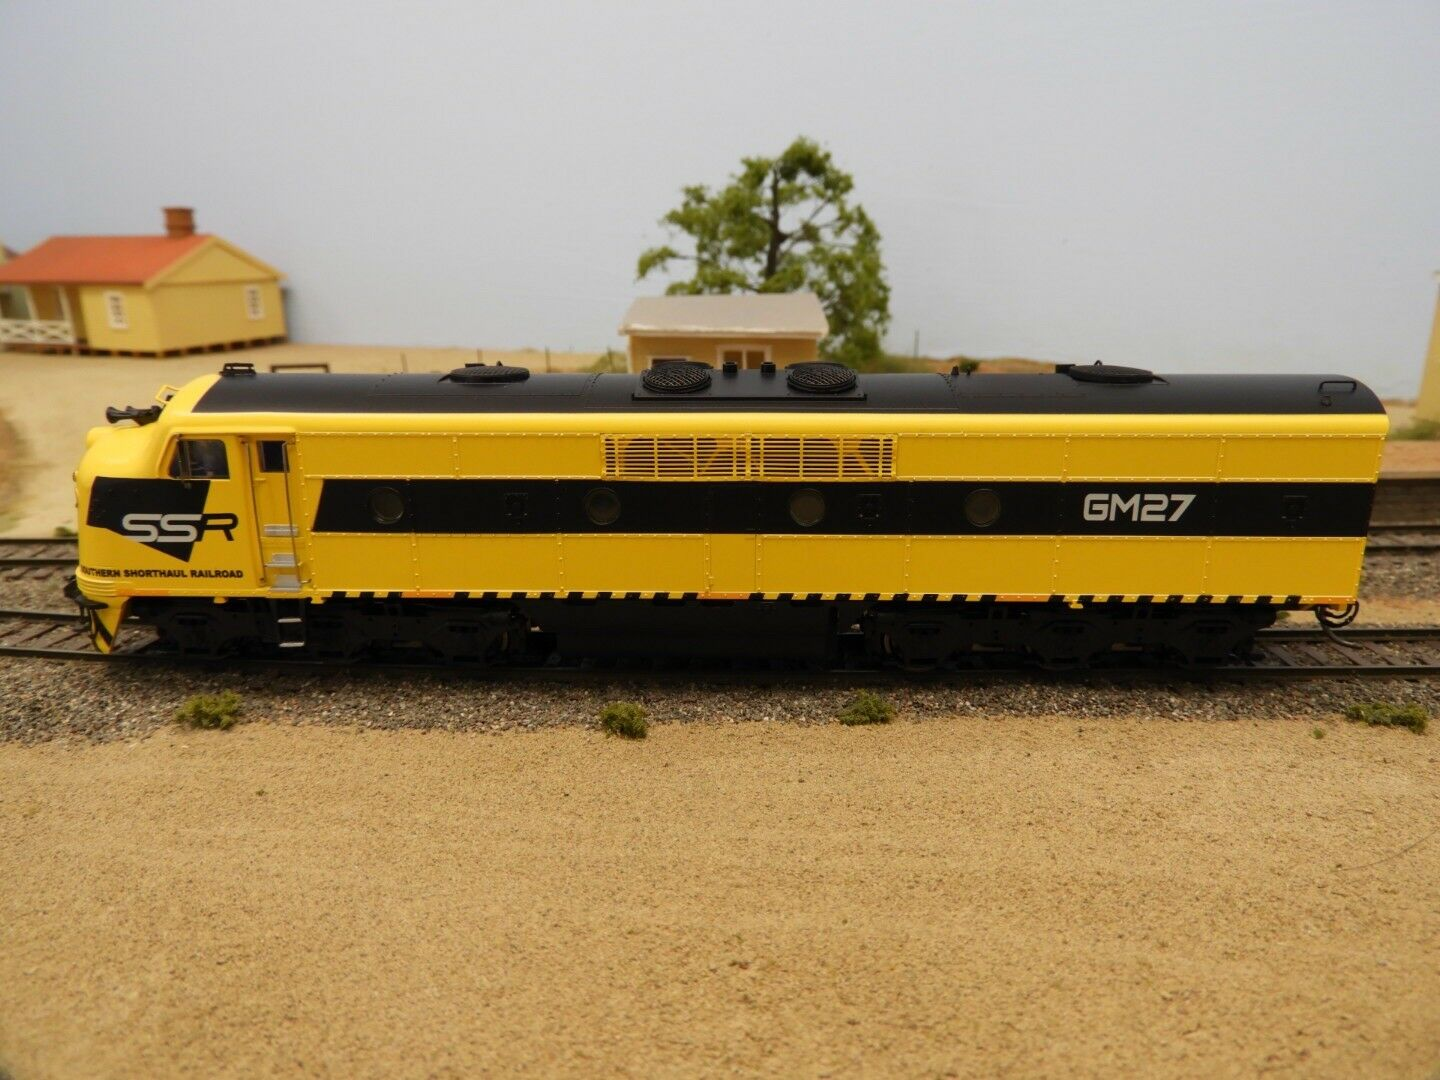 LATEST RELEASE  TrainOrama, GM Class Loco, HO Scale, SSR, GM27